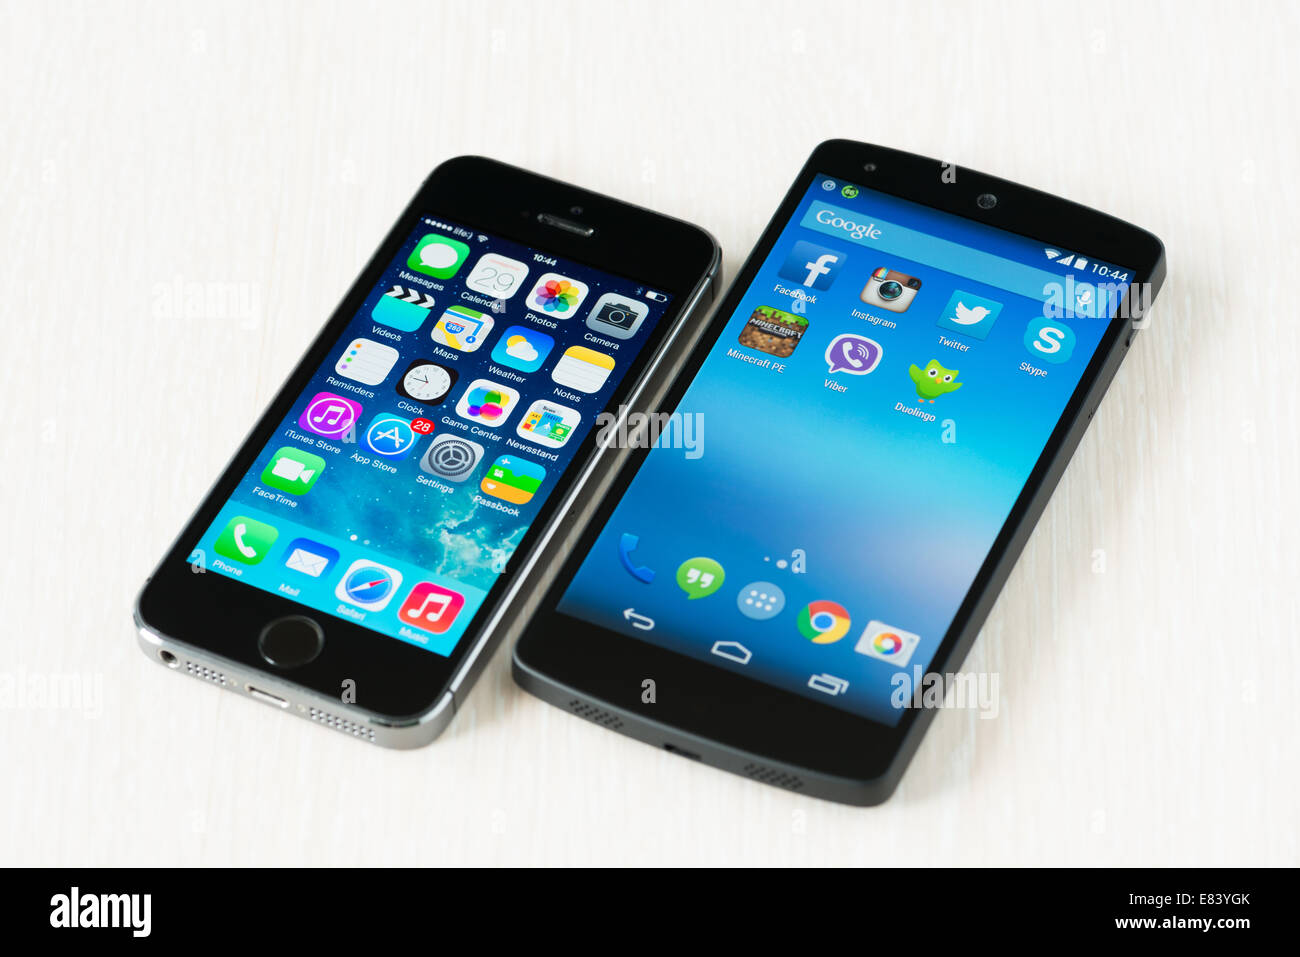 Close-up shot of brand new Apple iPhone 5S and Google Nexus 5 smartphones lying on a desk. - Stock Image